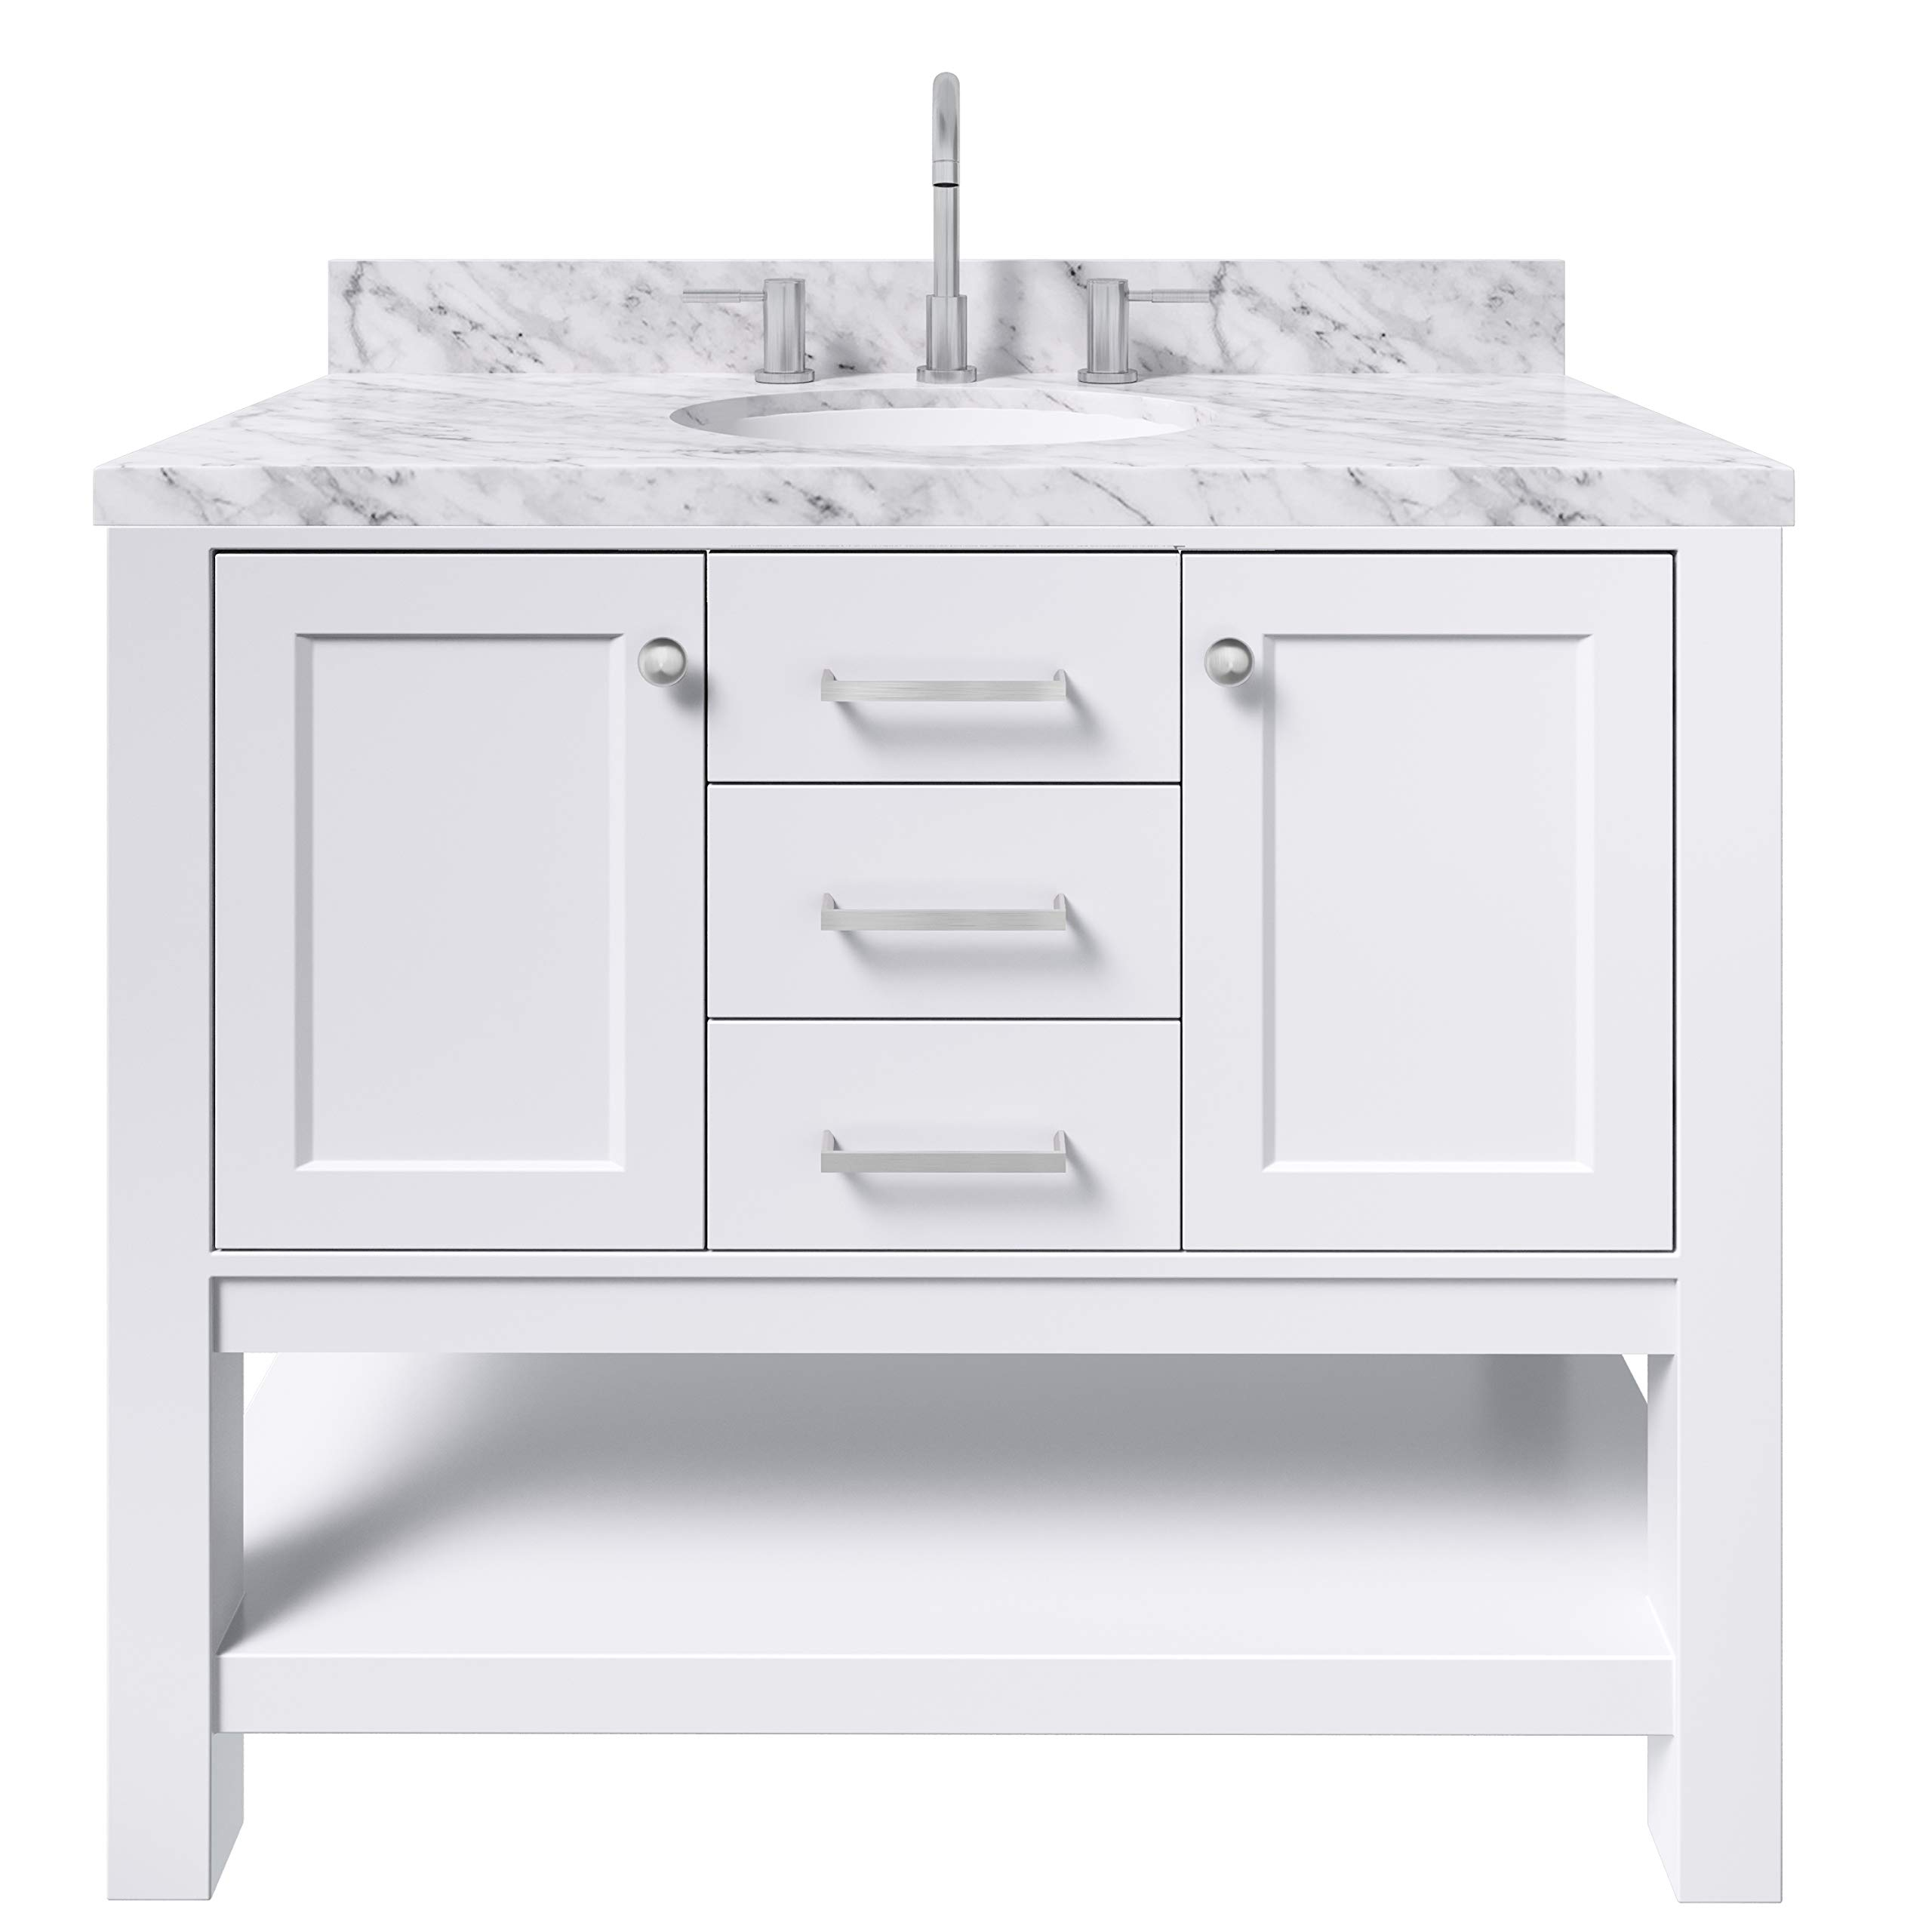 Amazon Com Ariel Bayhill 43 Inch Bathroom Vanity In White W 1 5 Edge Carrara Marble Countertop Oval Sink 2 Soft Closing Doors And 2 Dovetail Full Extensions Drawers Open Storage